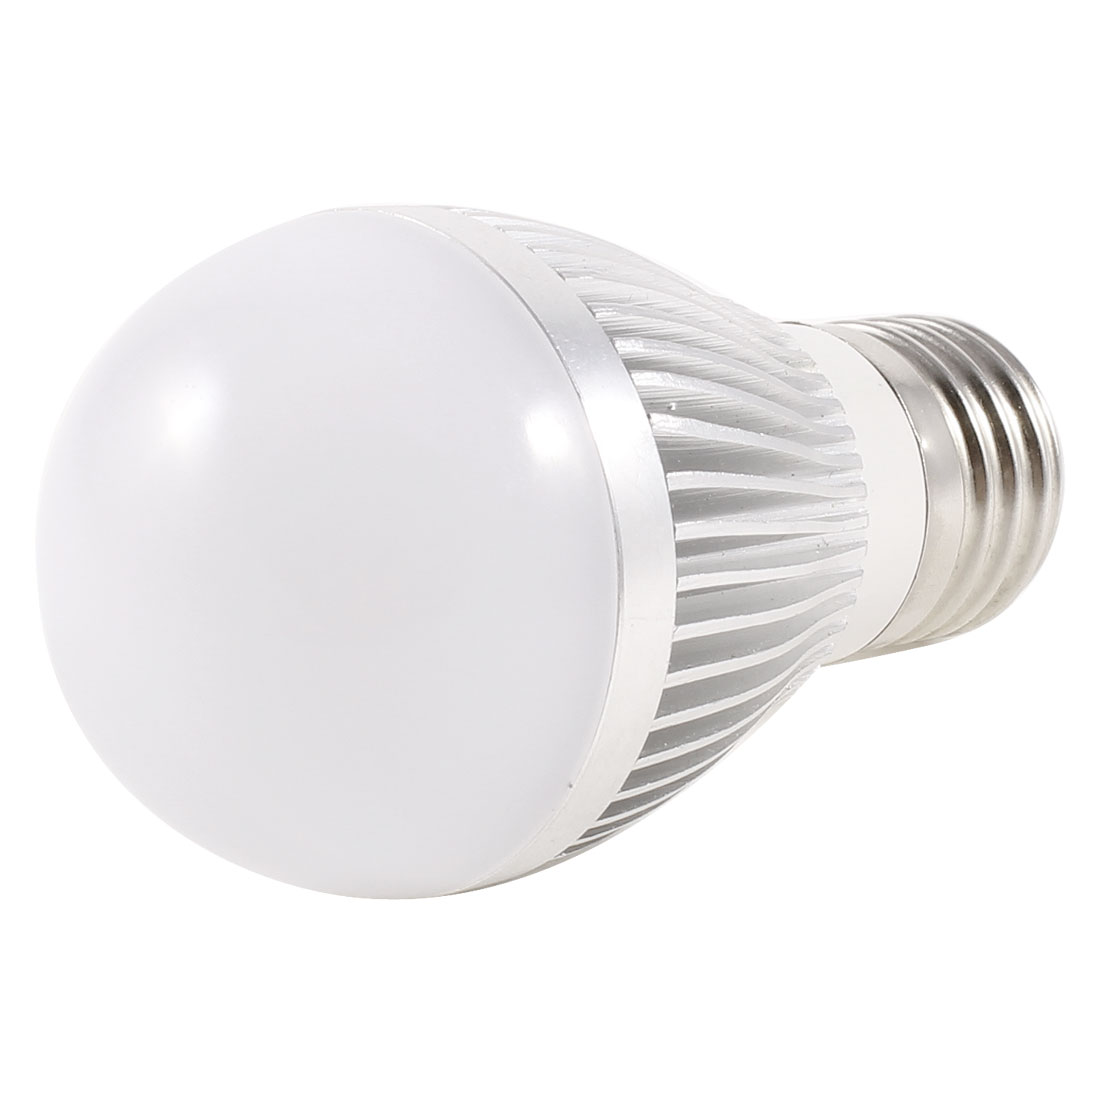 Bathroom 3W 220V E27 Socket White LED Globe Ball Bulb 50mm Dia